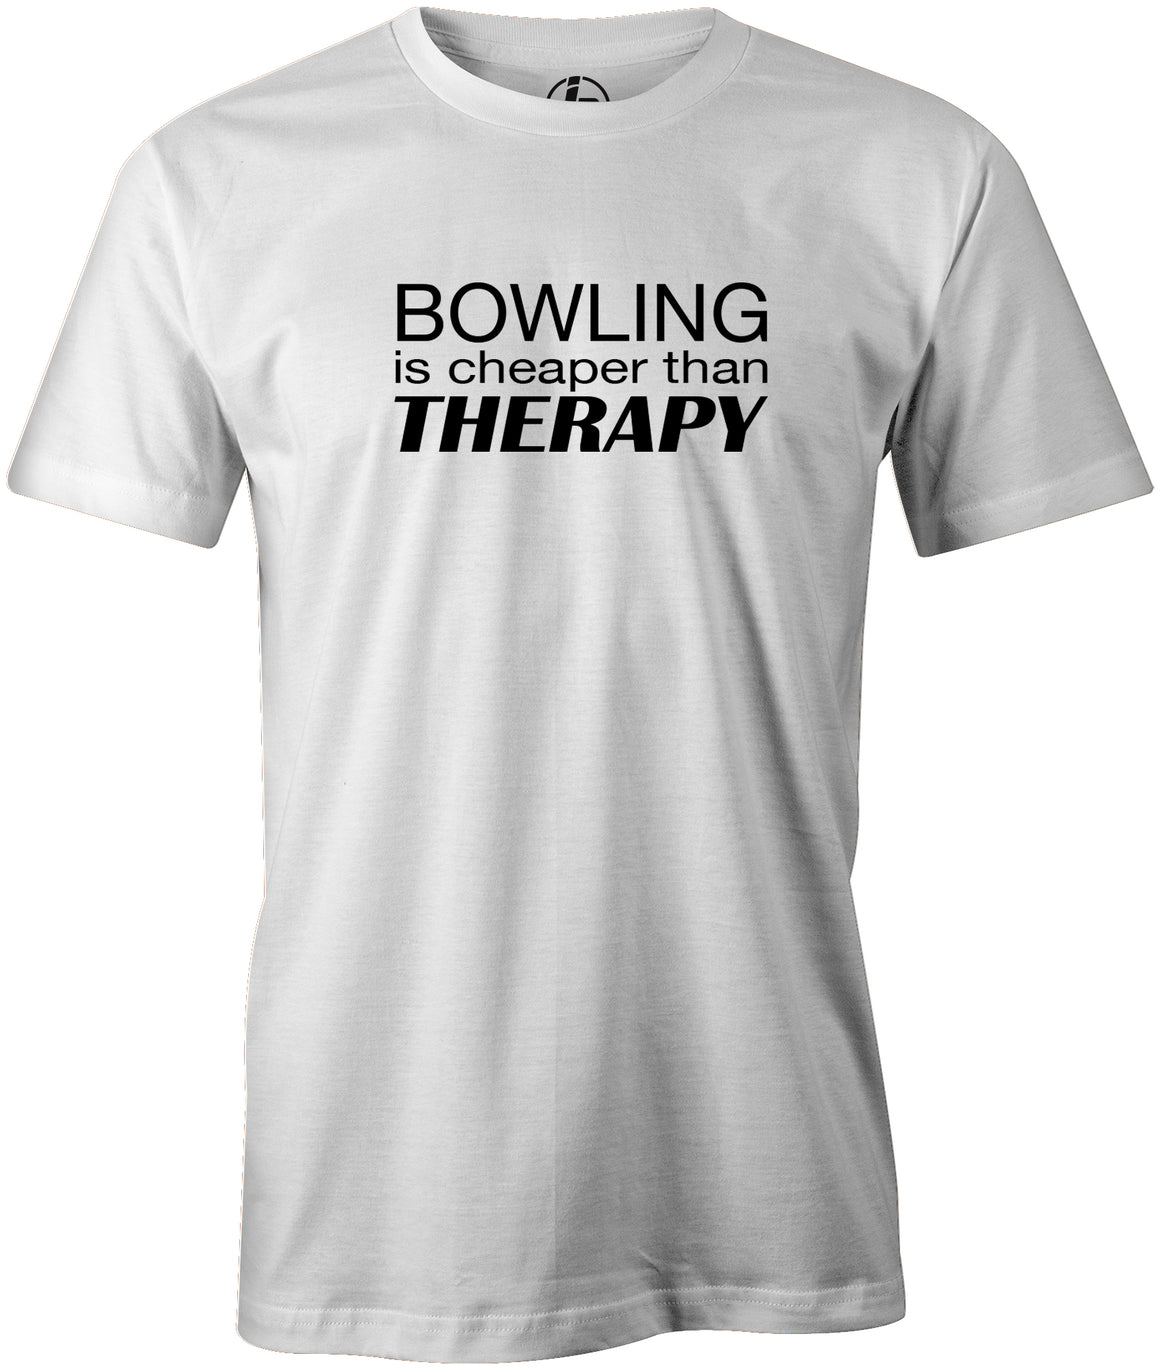 Bowling is Cheaper Than Therapy